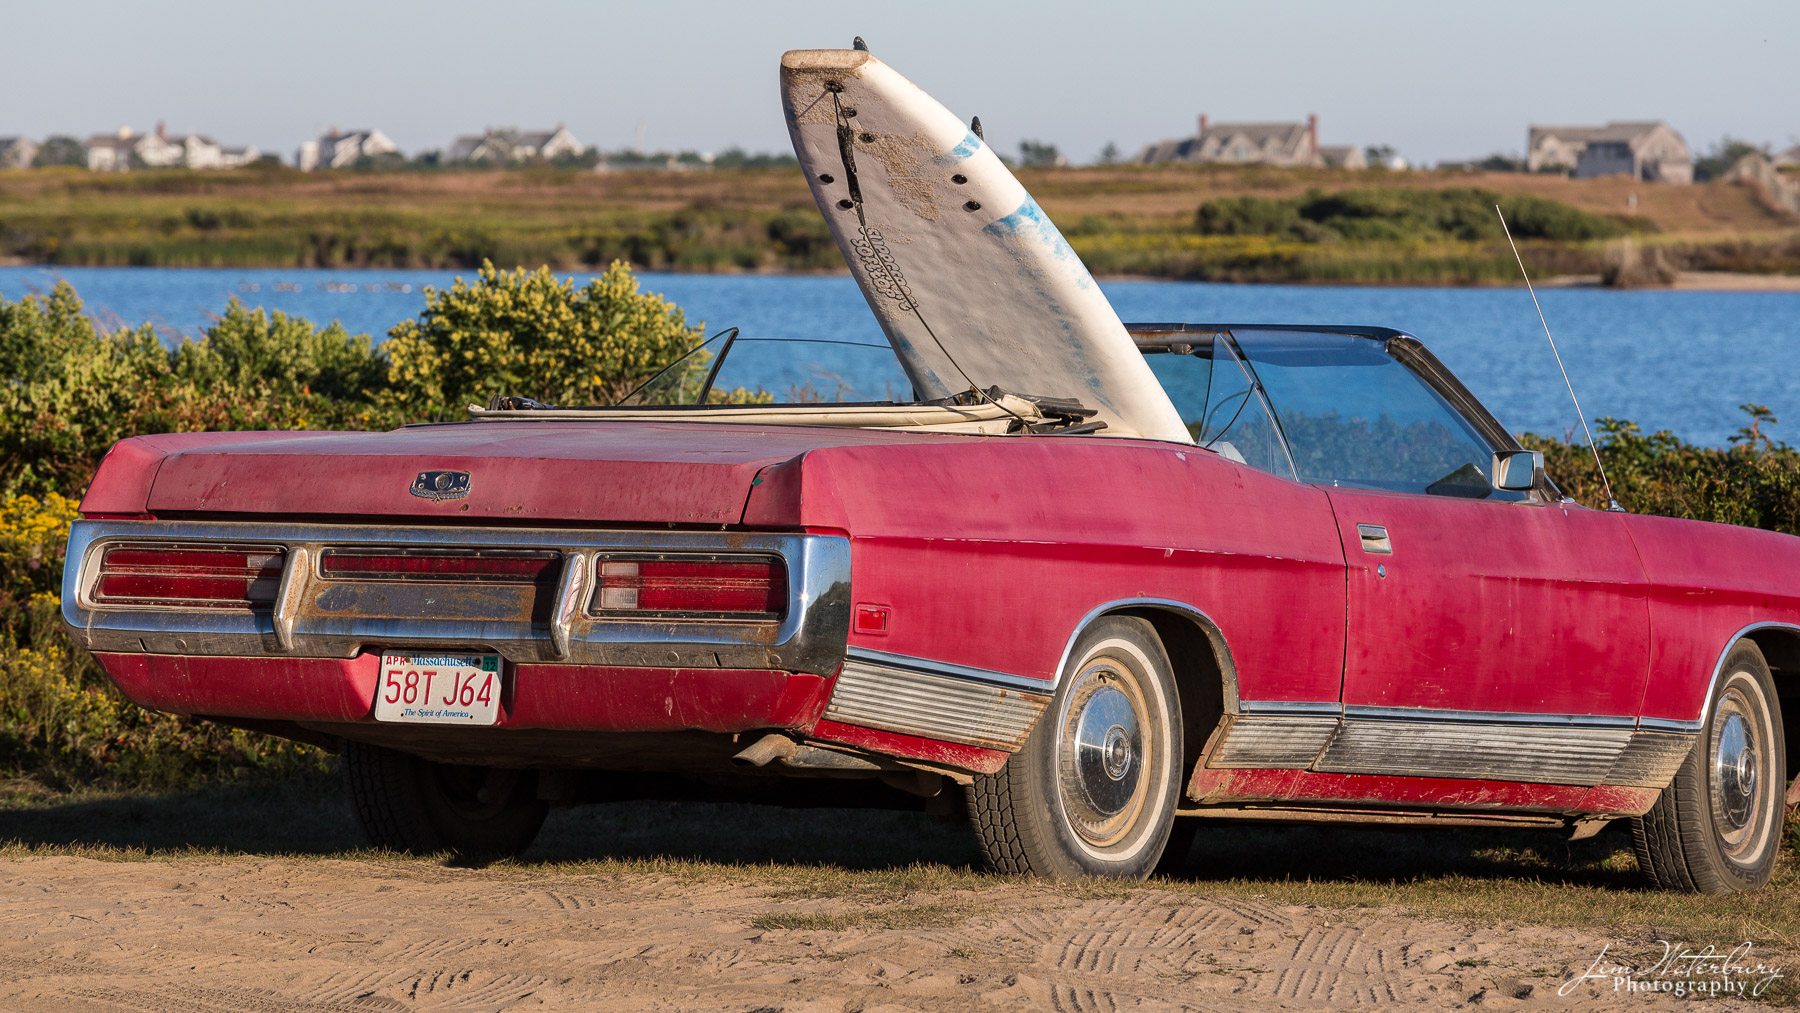 Red convertible, with surfboard in the back seat, parked in the sand at Miacomet Beach in Nantucket.